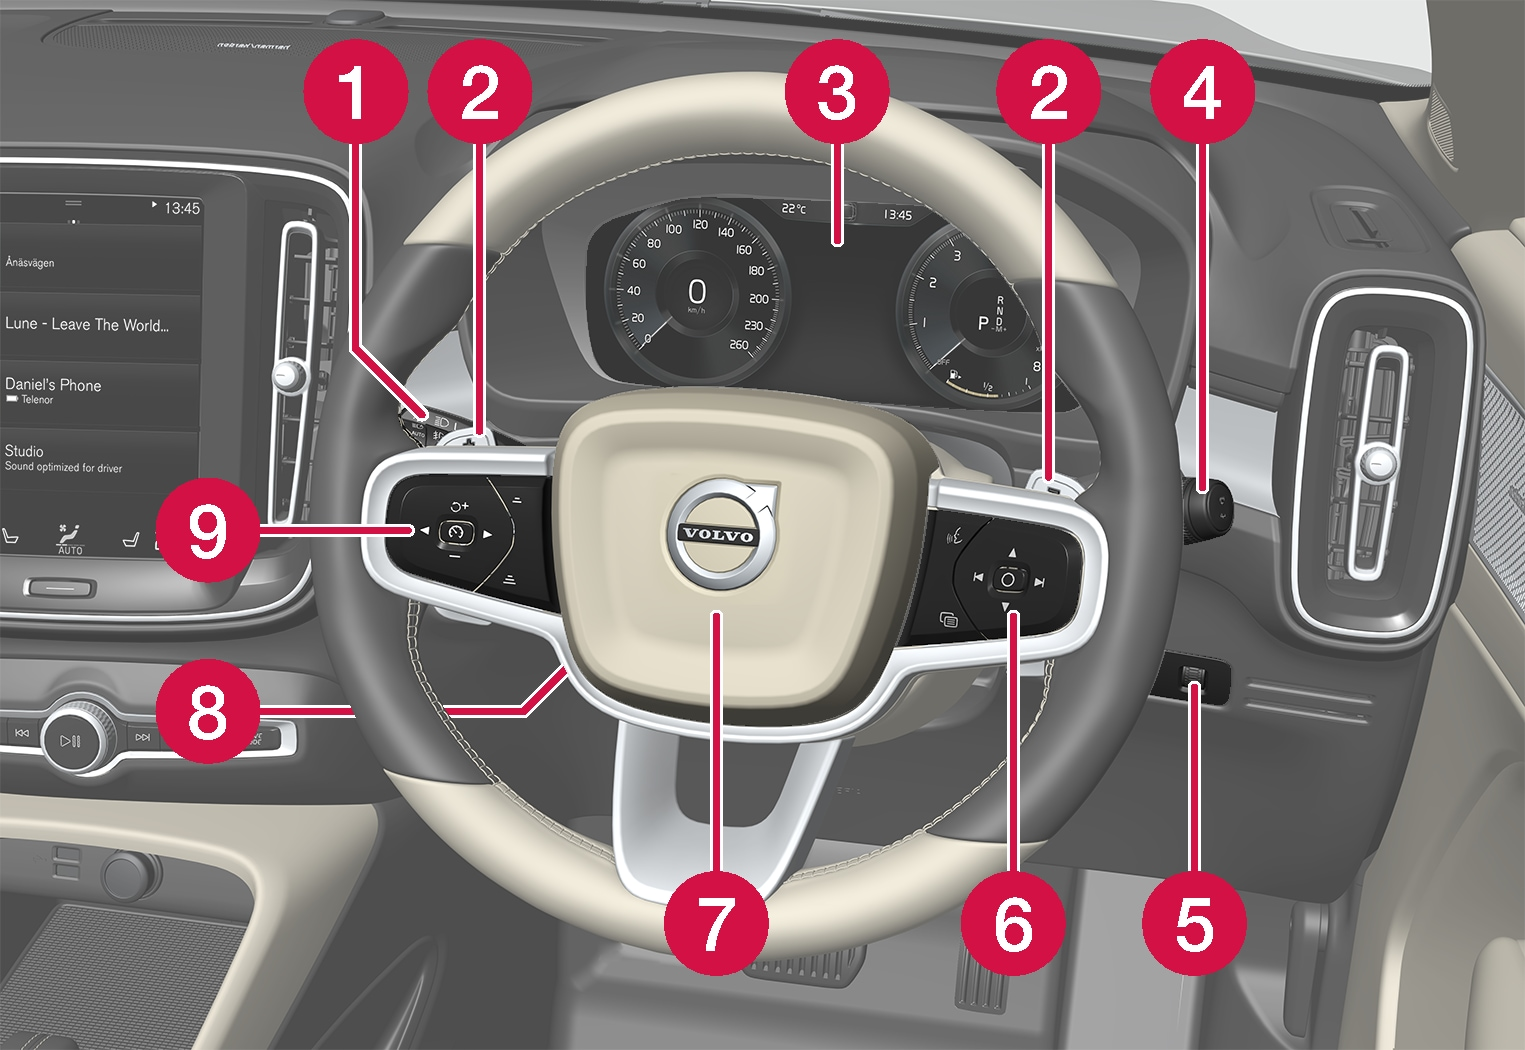 P6-XC40-1746-Instrument panel and controls overview, right hand drive